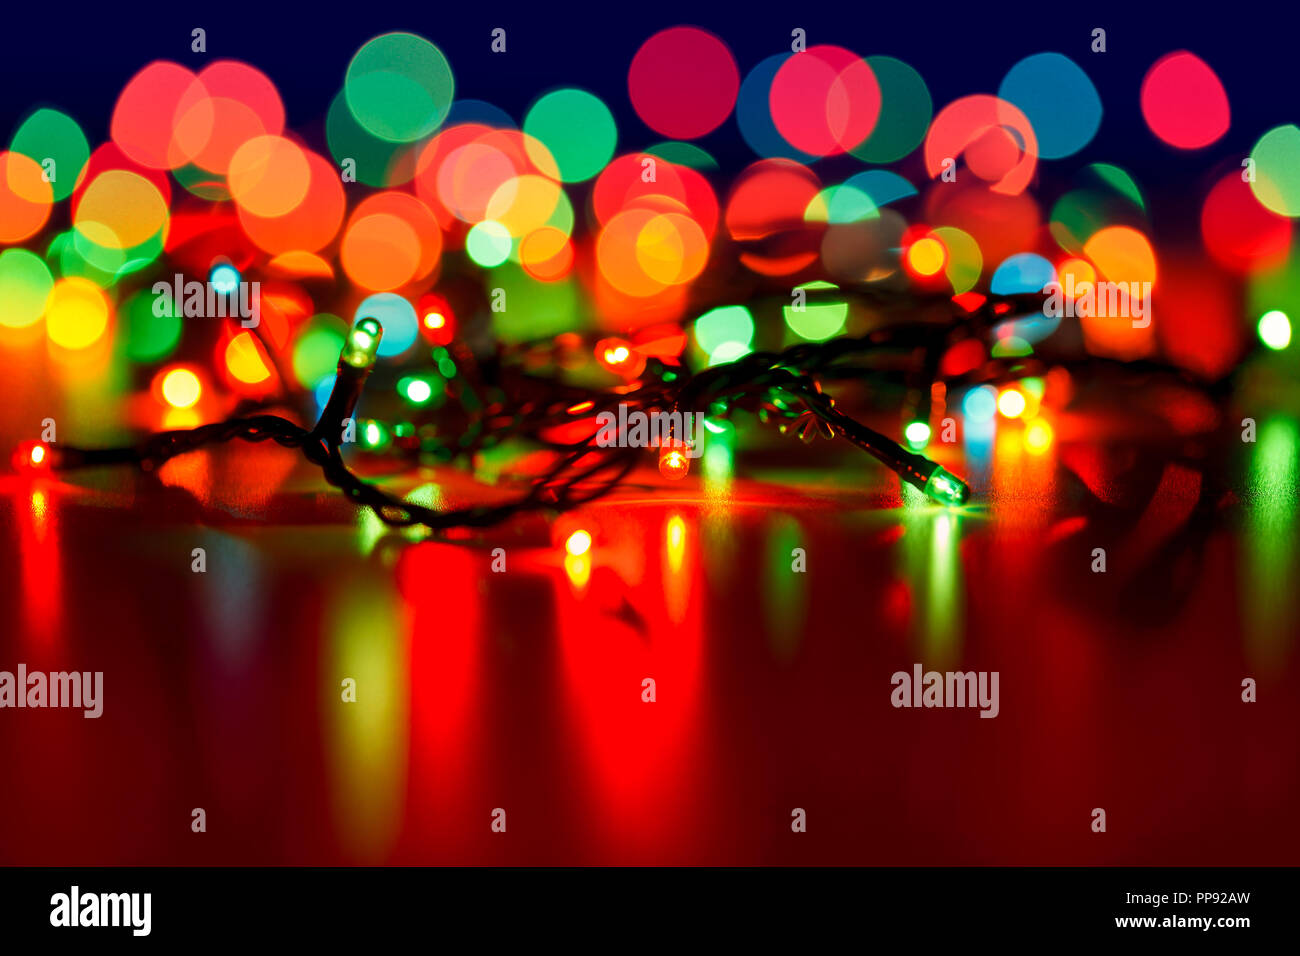 Christmas lights with blurred background Stock Photo